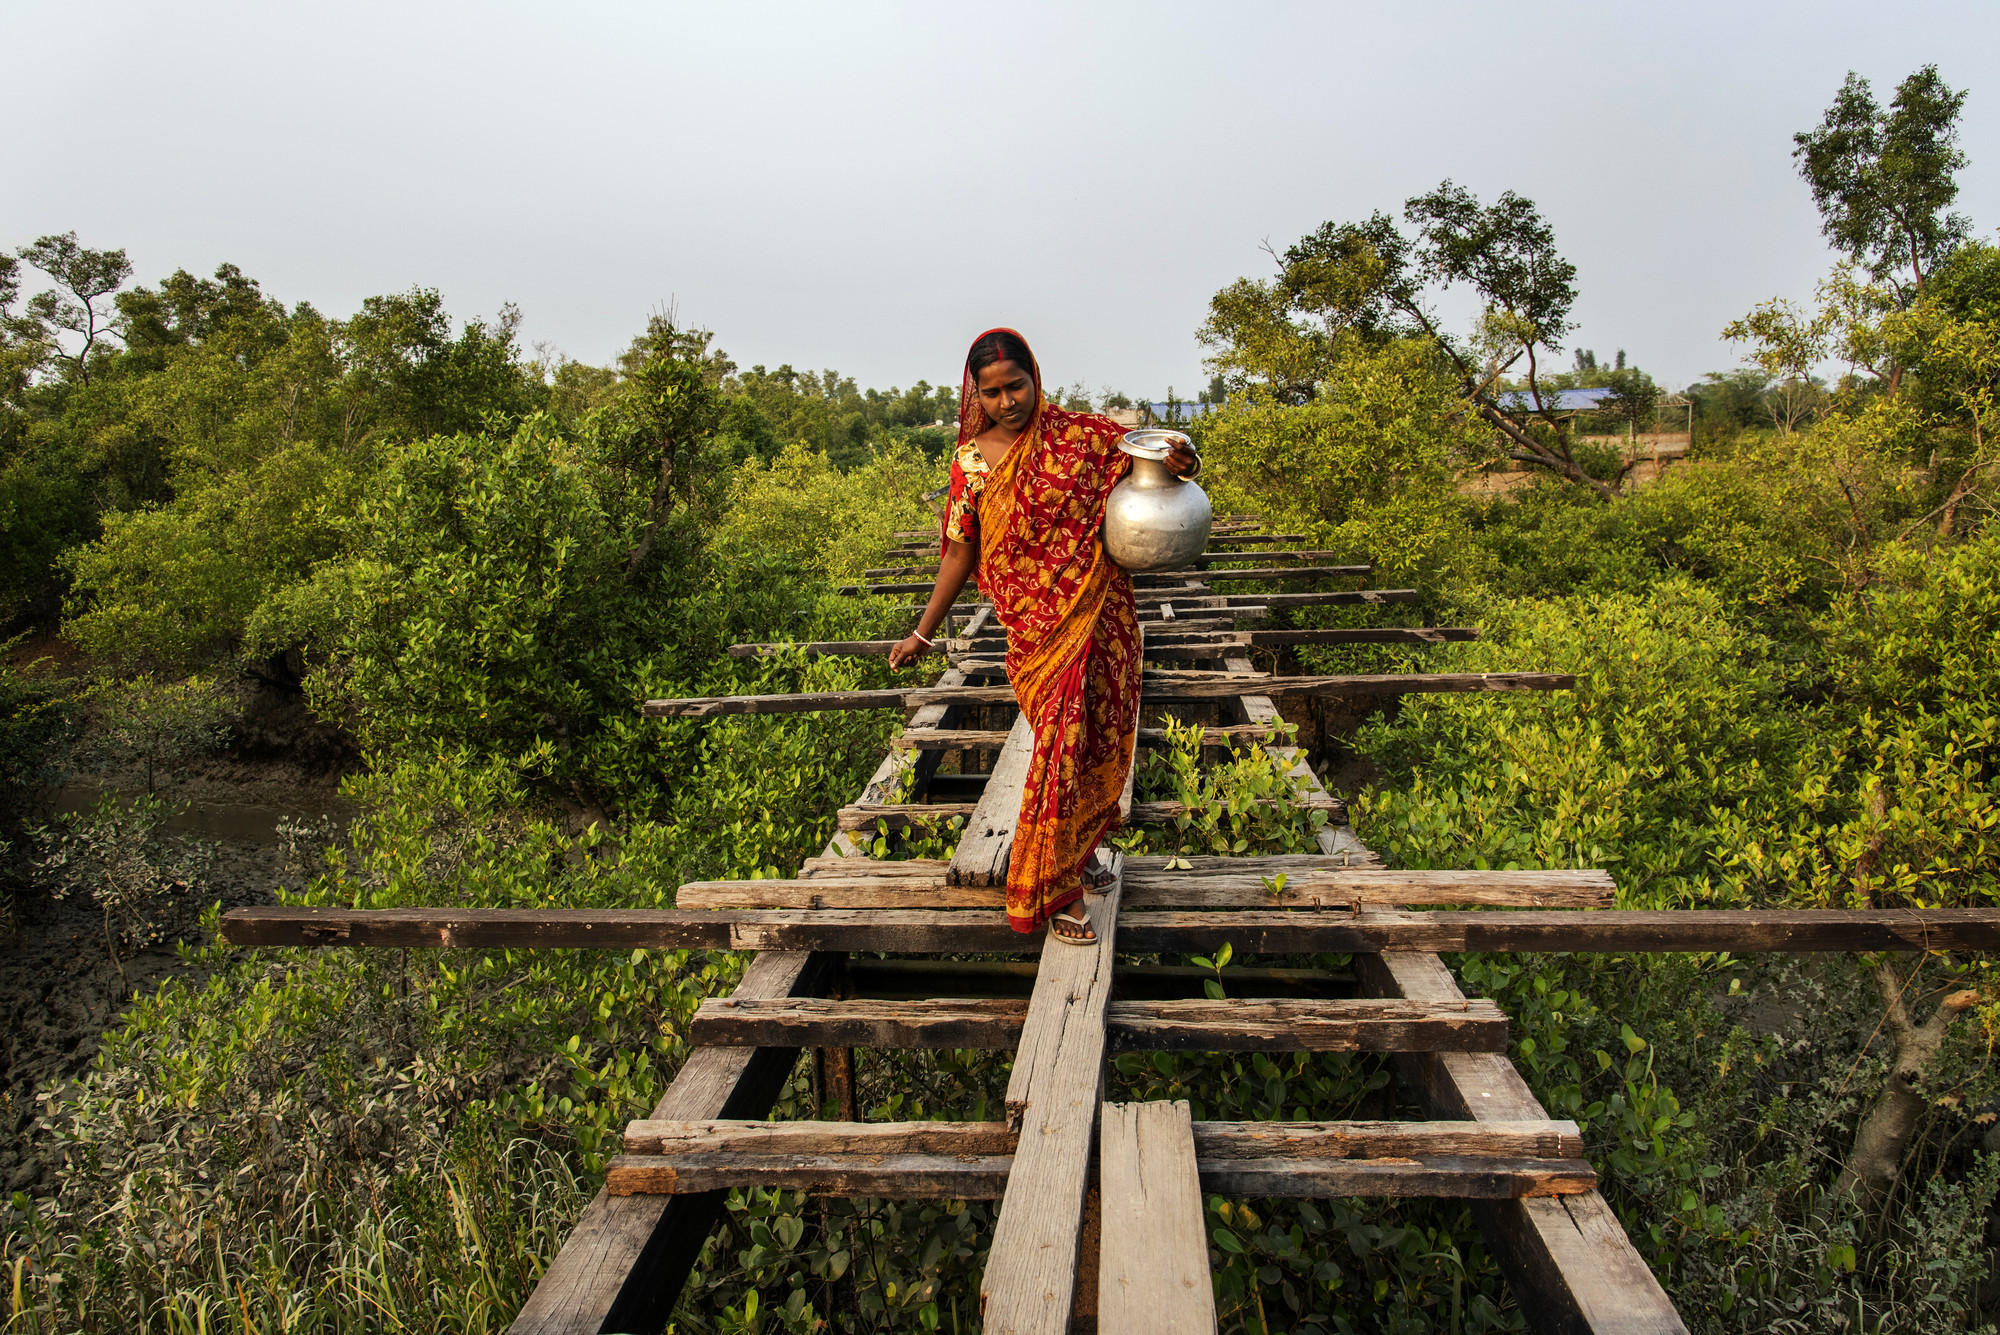 Susmita Mandal Jana, a 22-year-old housewife,  who is residing in Madhab Nagar area of Pathar Pratima under South 24 Parganas district of West Bengal, India is crossing a highly risky broken bridge with a big pot to collect the drinking water.